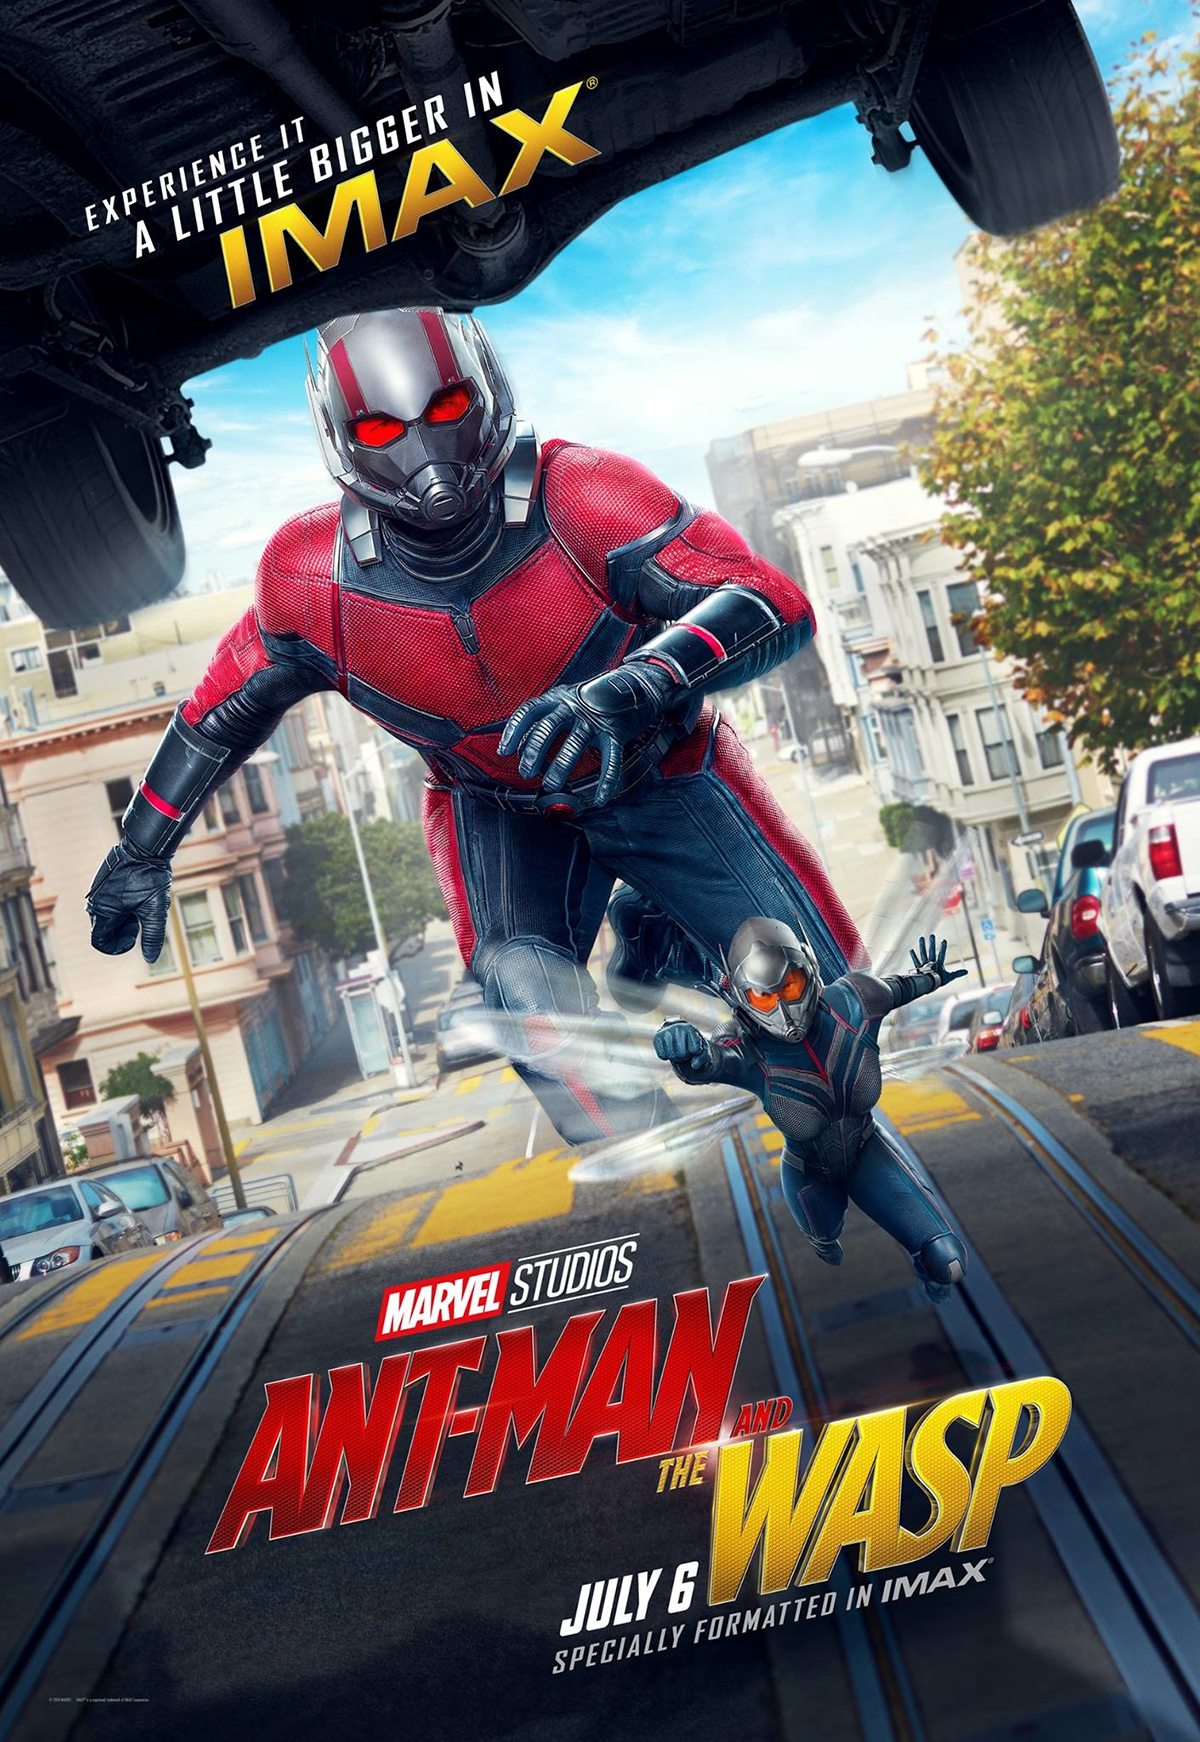 Ant-Man-and-the-Wasp-IMAX-poster.jpg